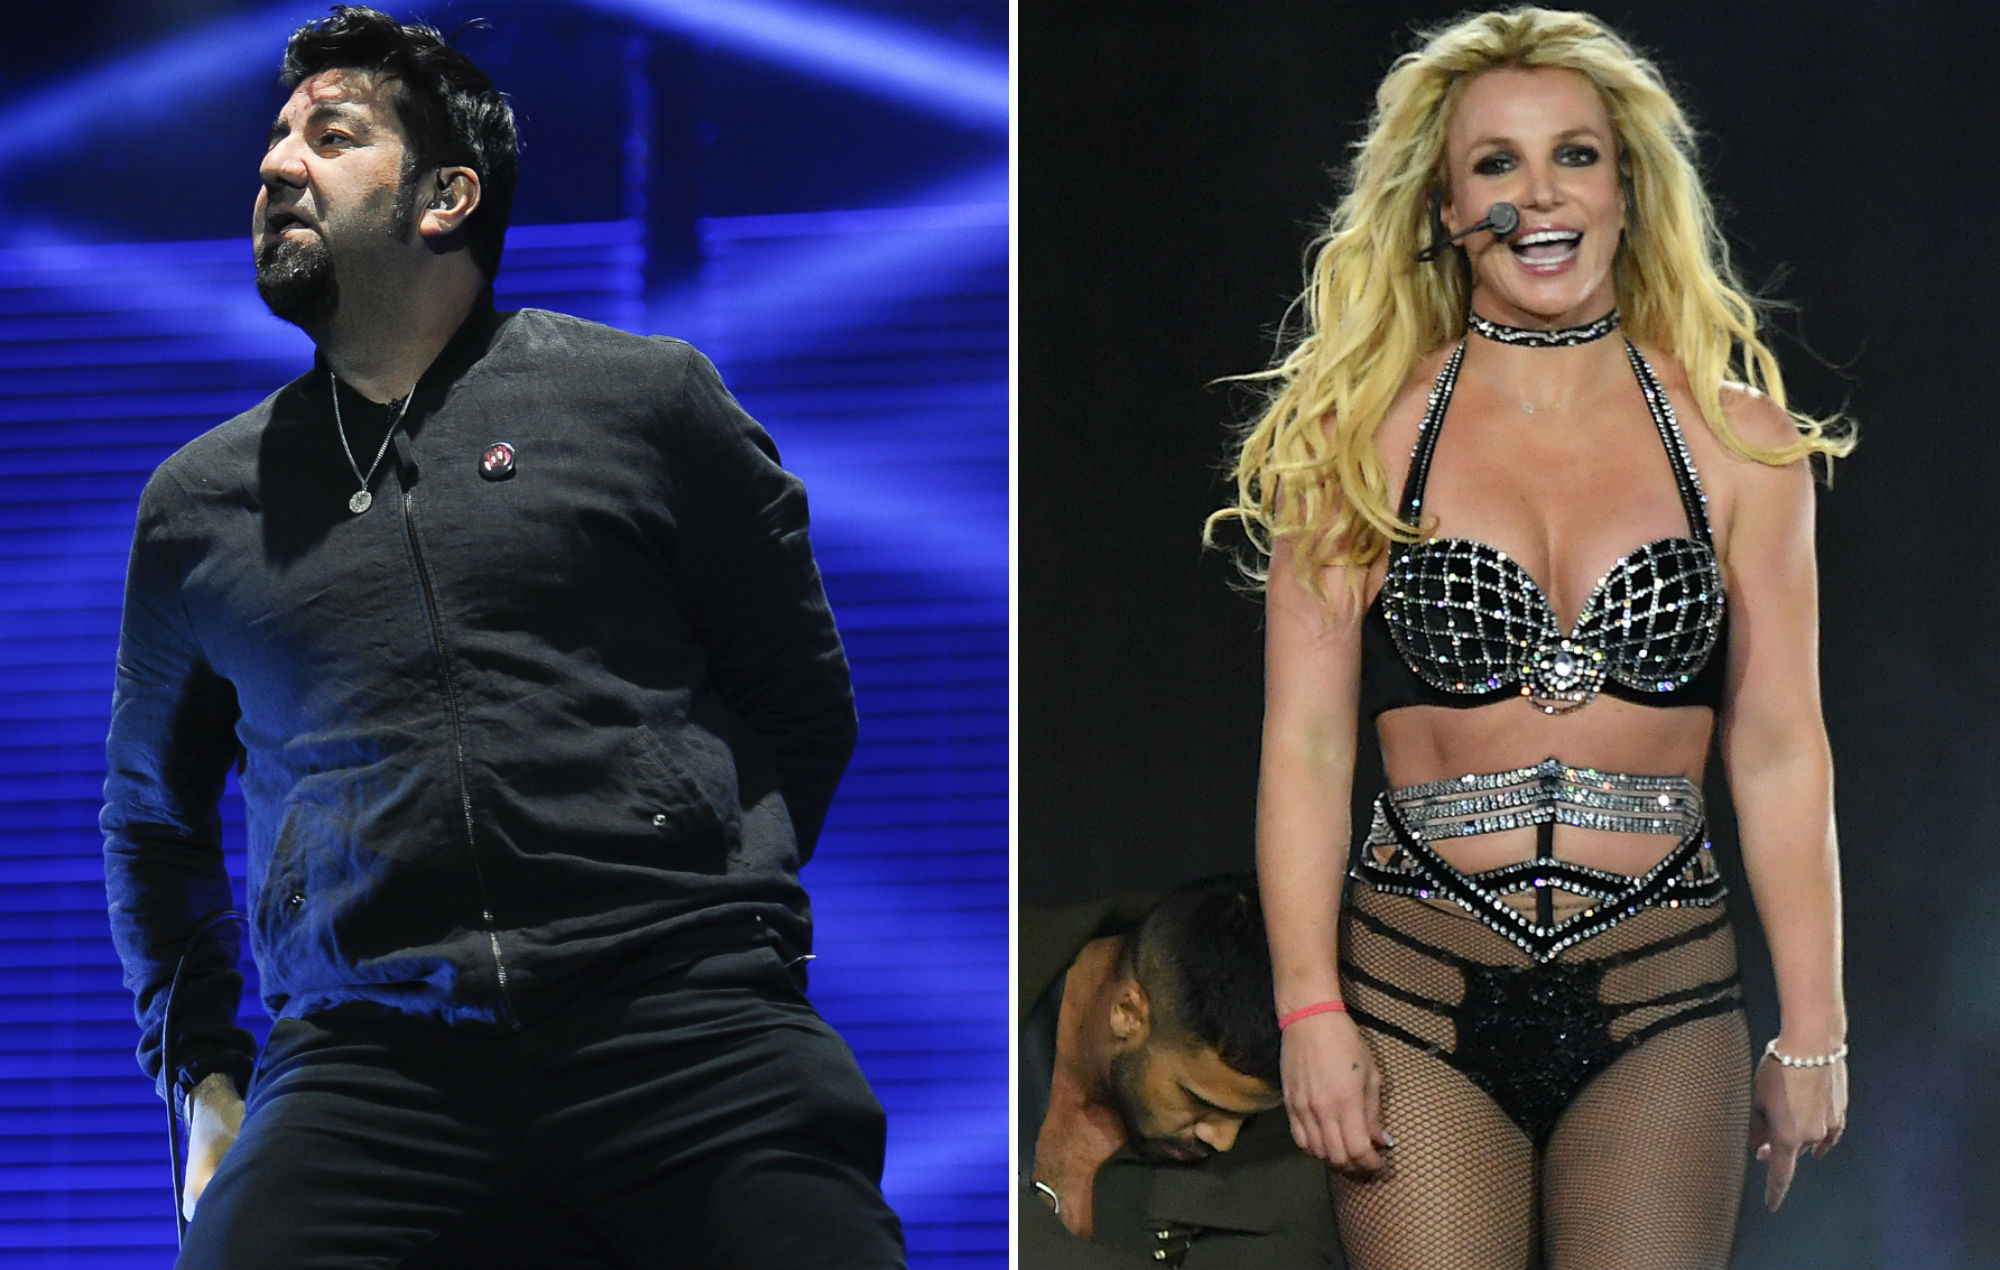 Who knew? This Deftones x Britney Spears mash-up works surprisingly well